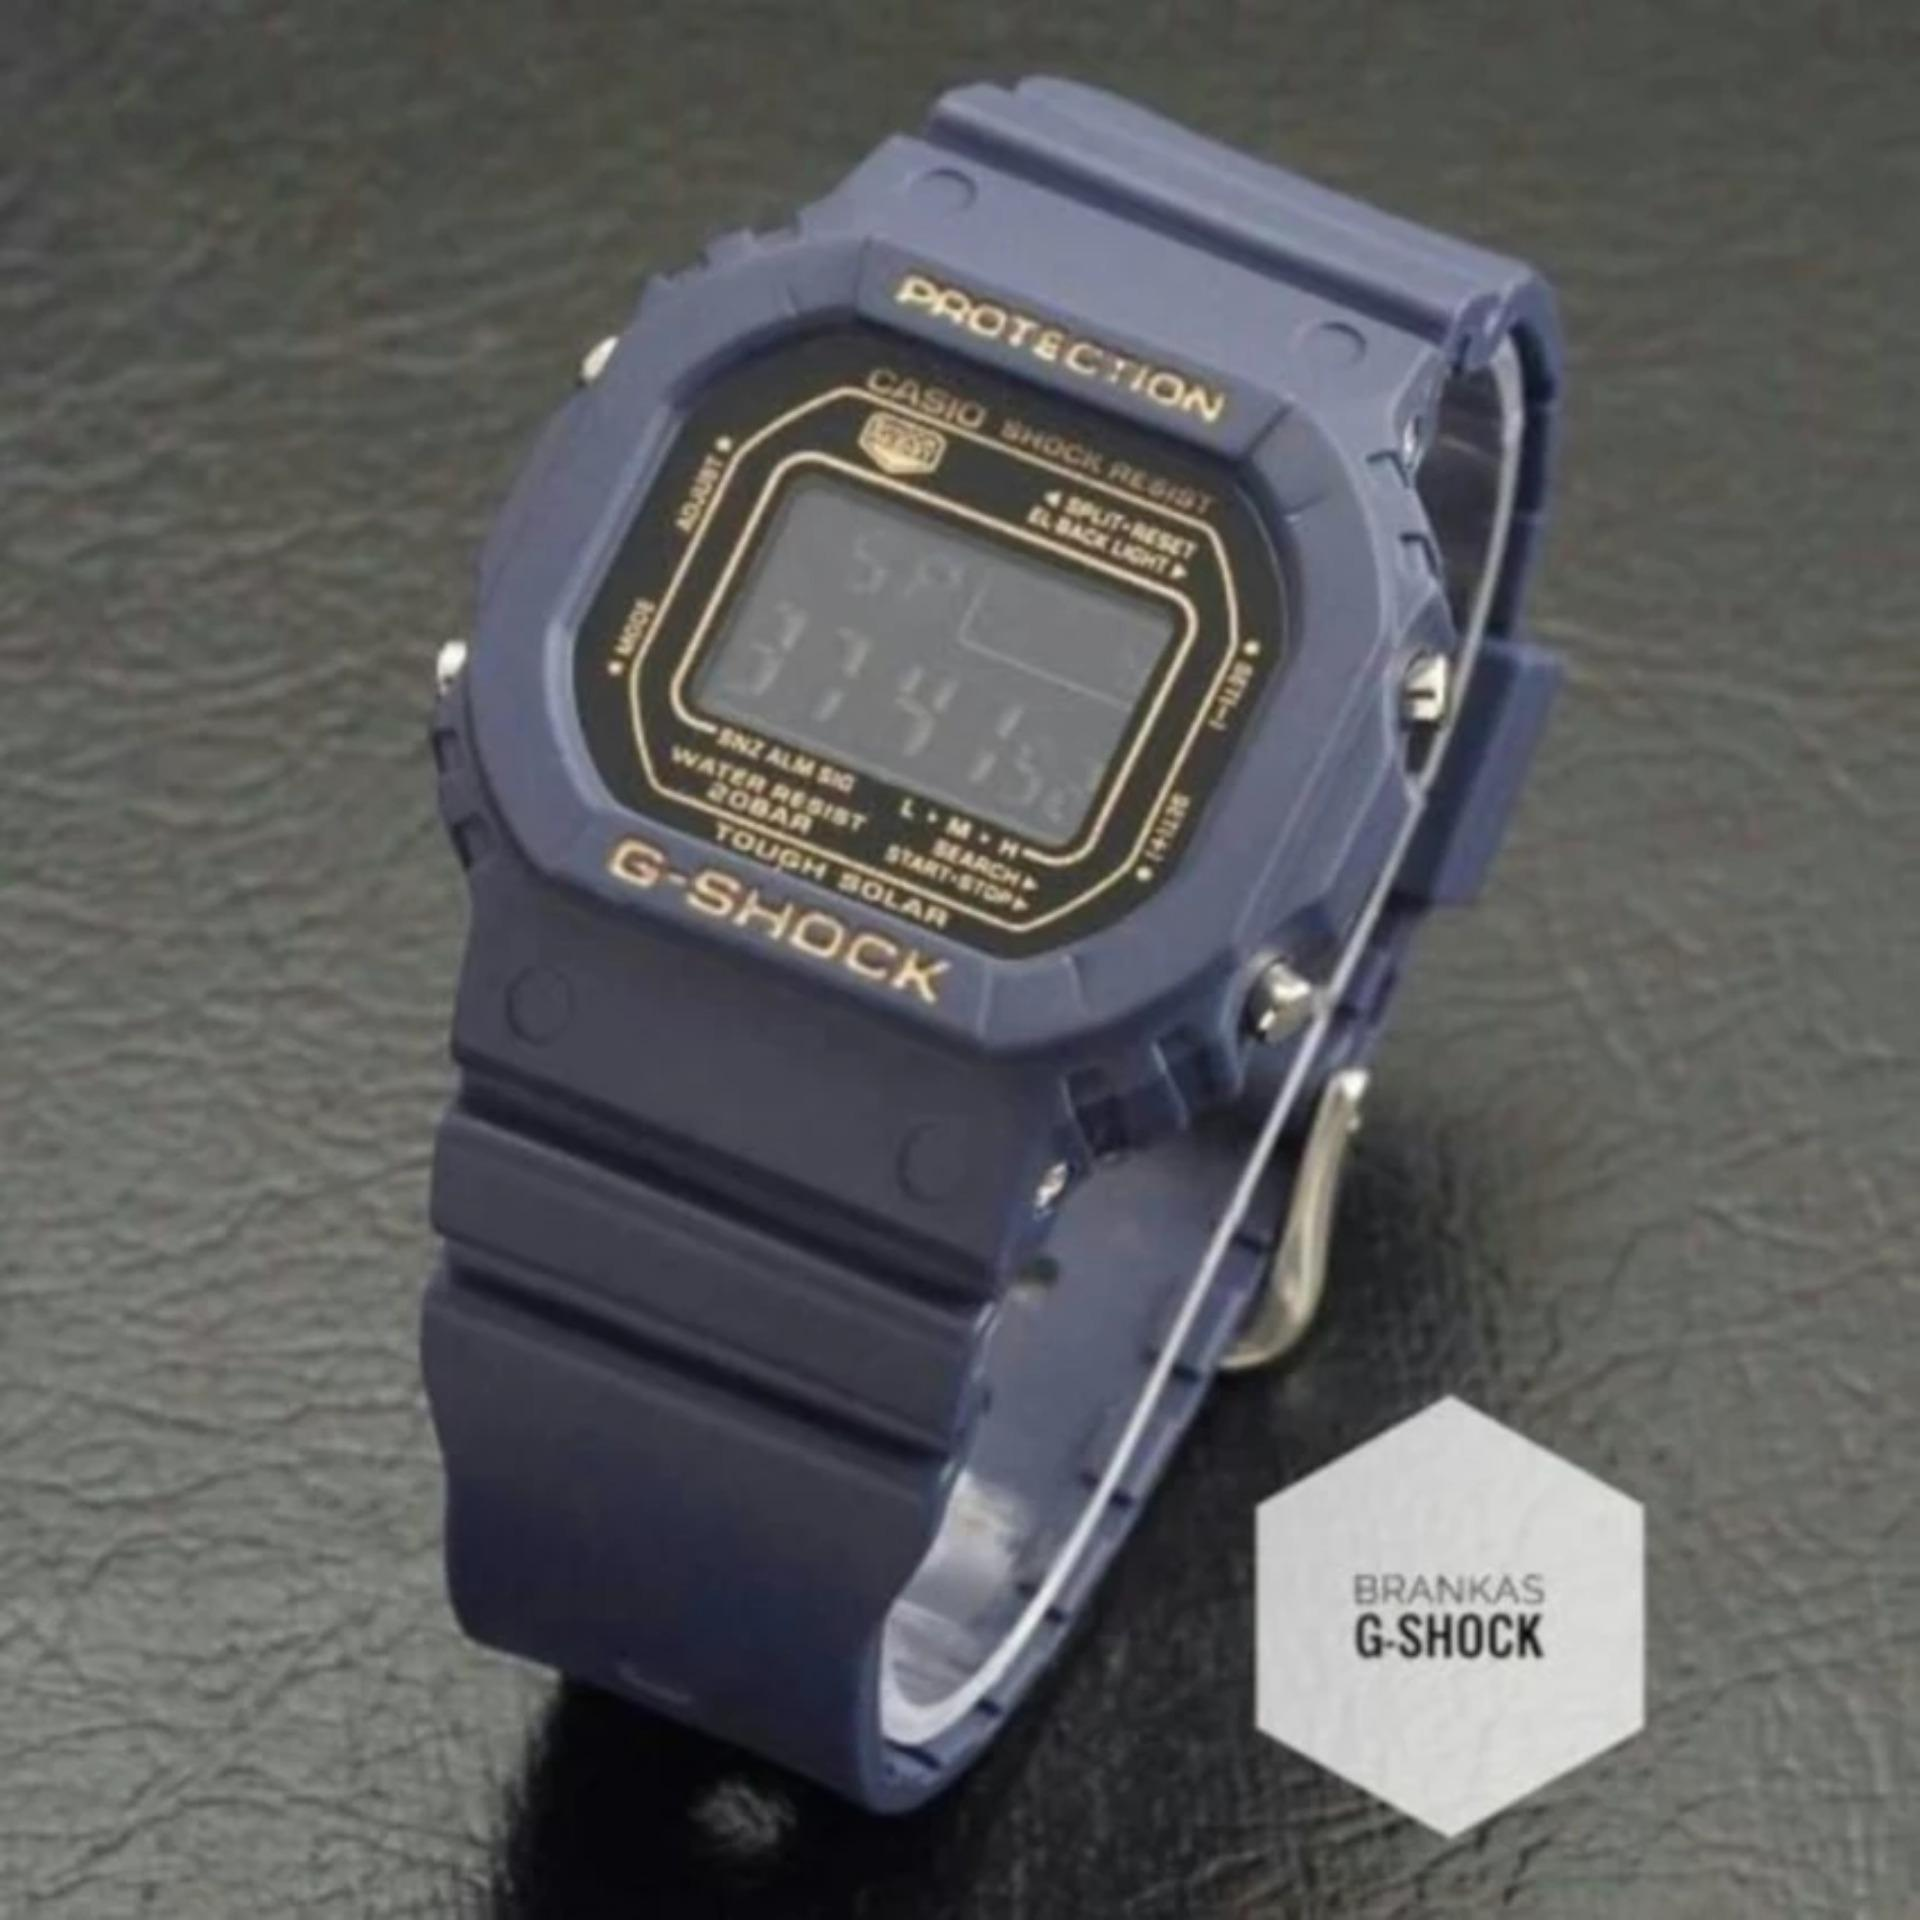 Cowok LED Source Jam Tangan Wanita G Shock W112 Double Time Super Daftar .